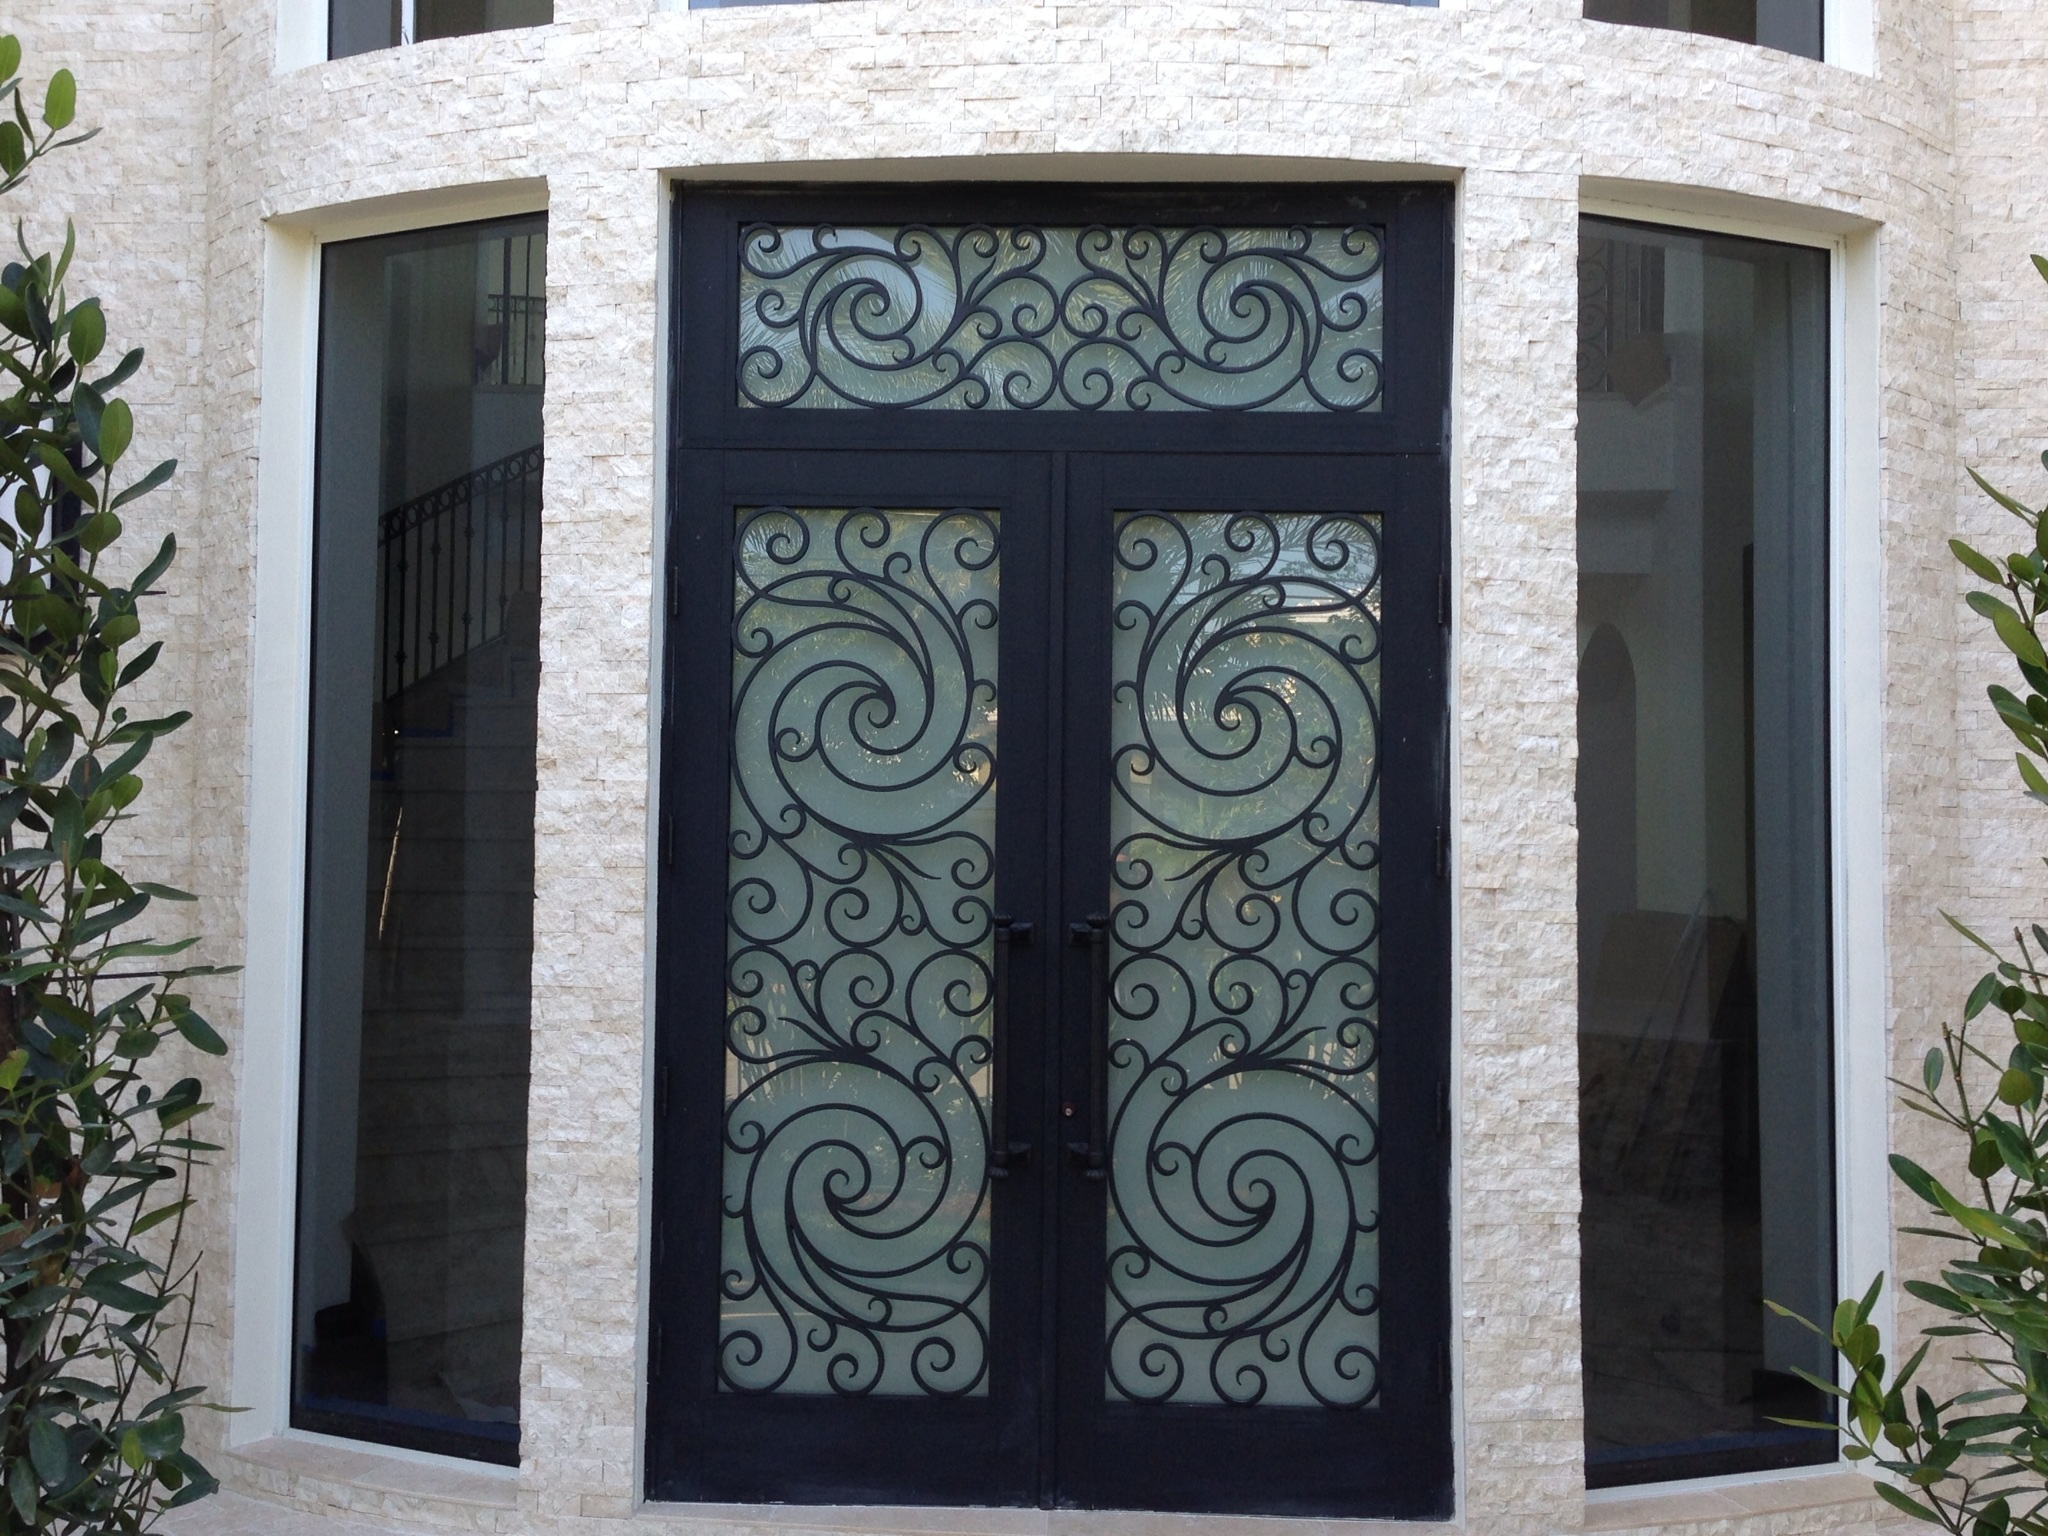 Findingthe Perfect Iron Door for Your OrlandoFLHome